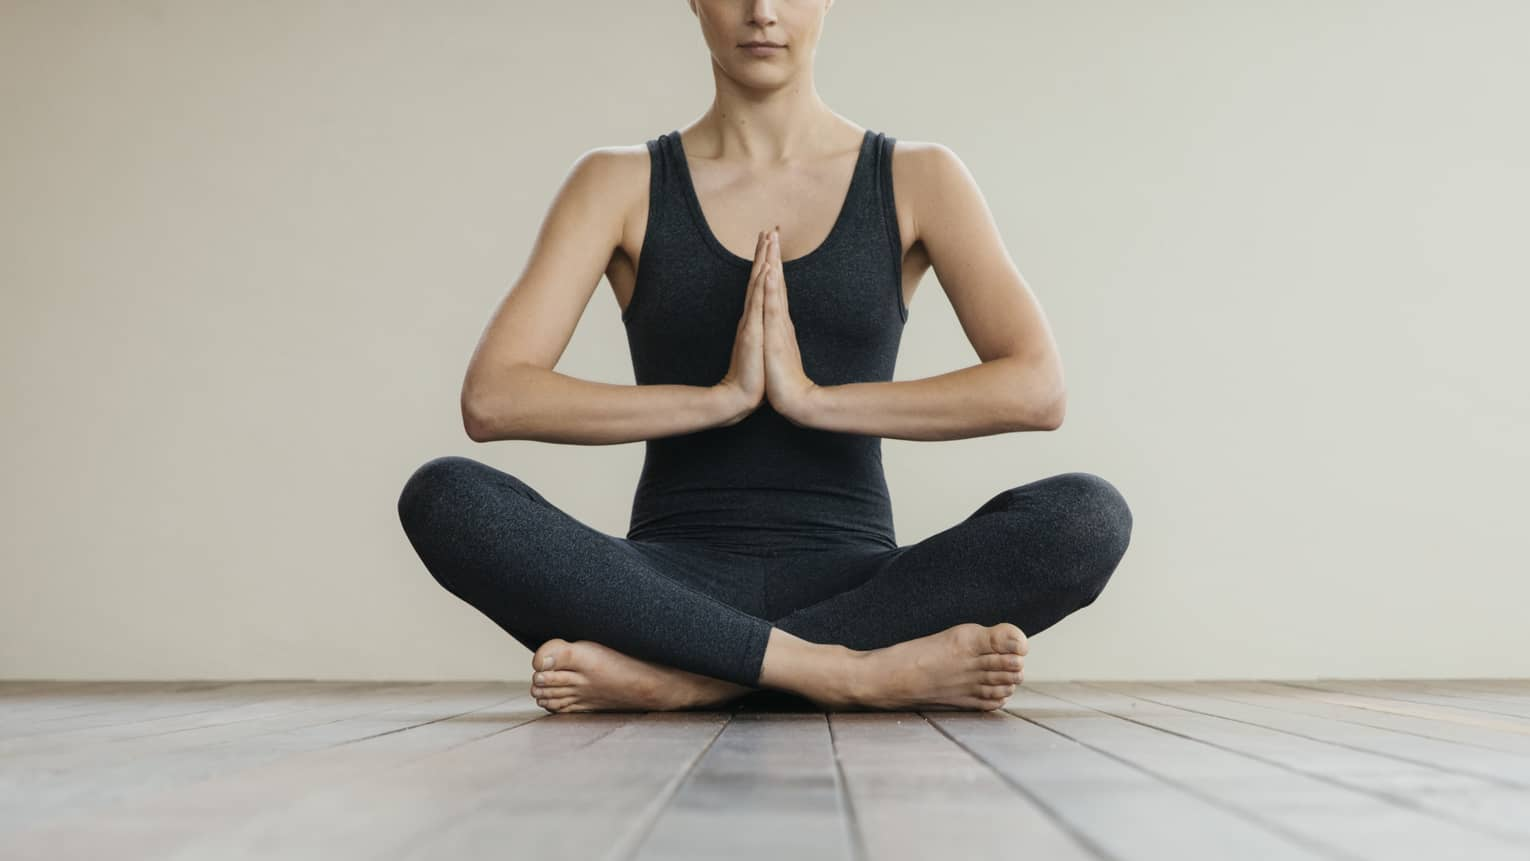 Woman wearing black sits cross-legged on floor in yoga prayer pose